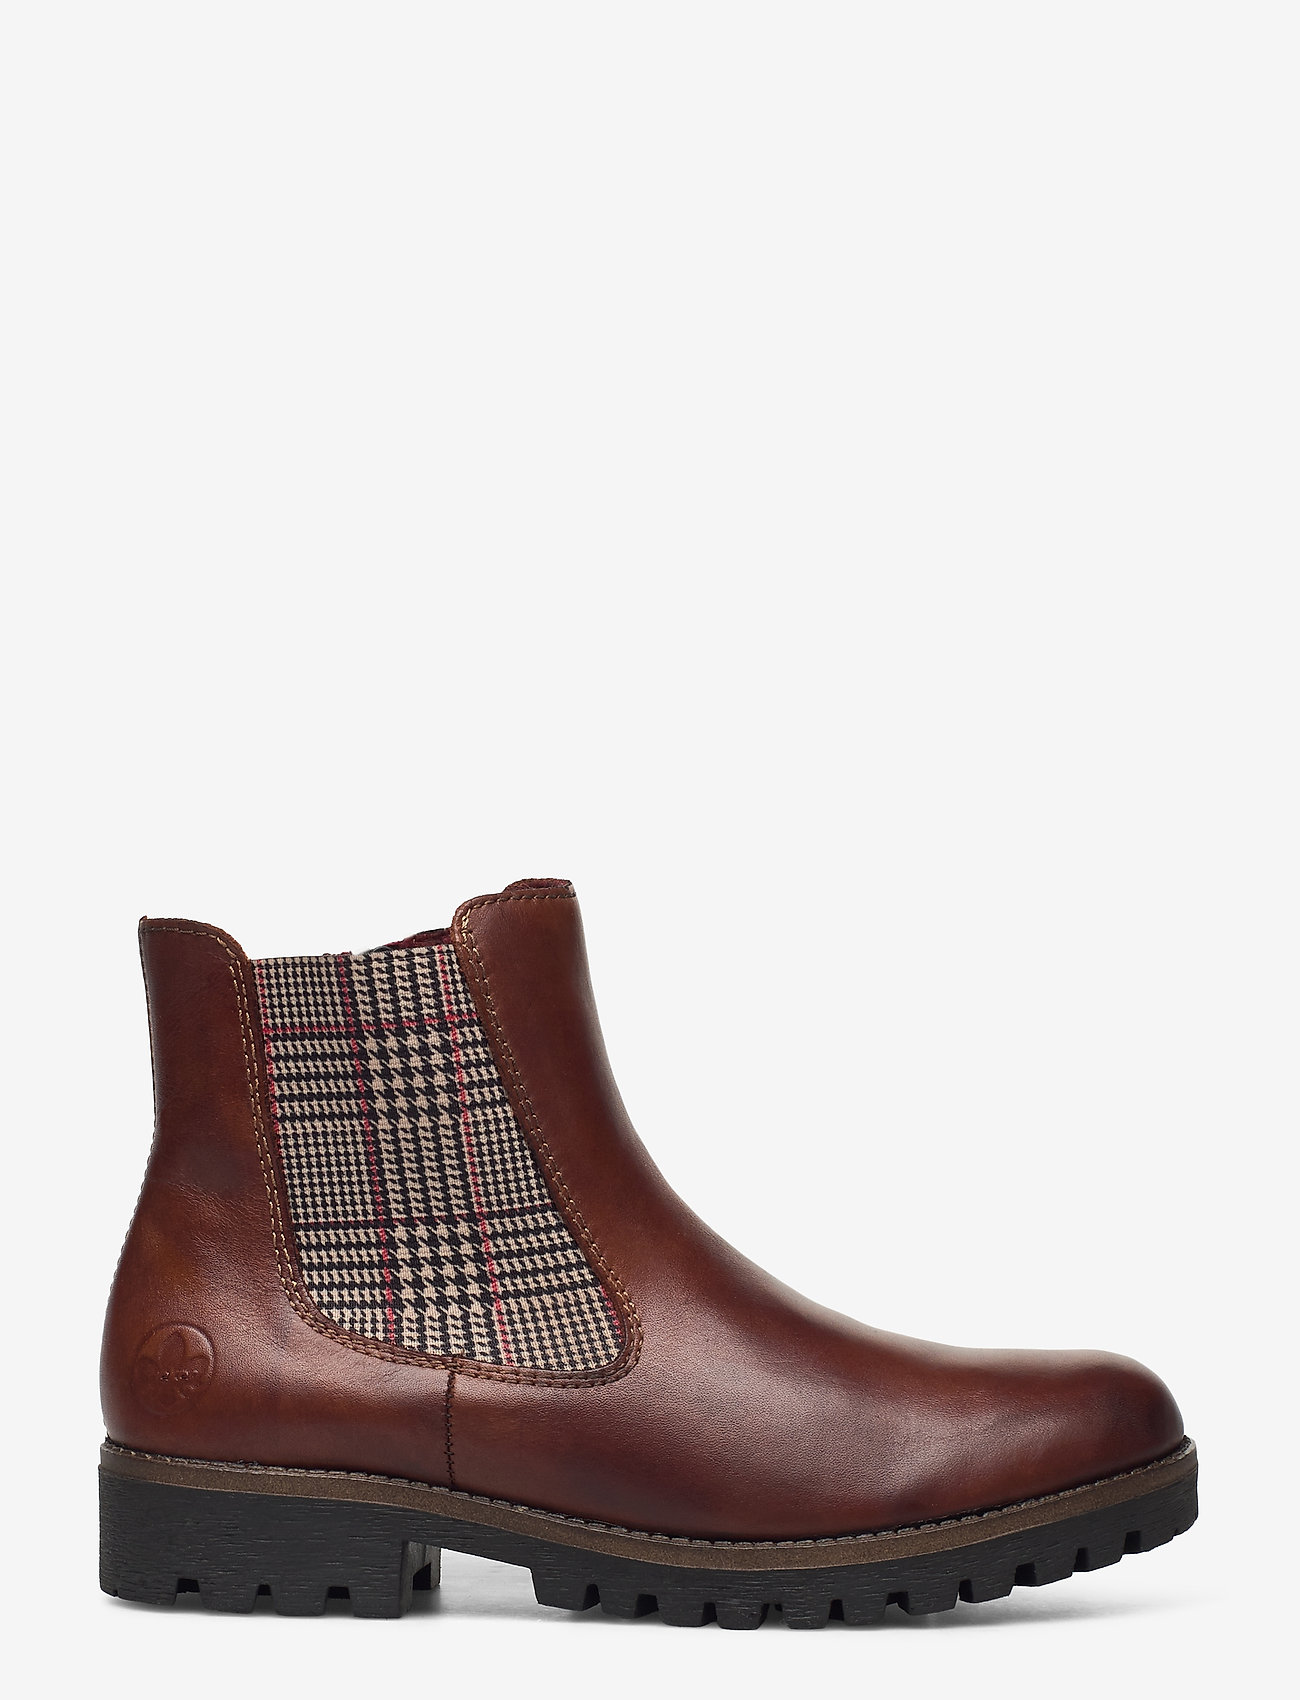 Rieker - 78570-25 - chelsea boots - brown - 1